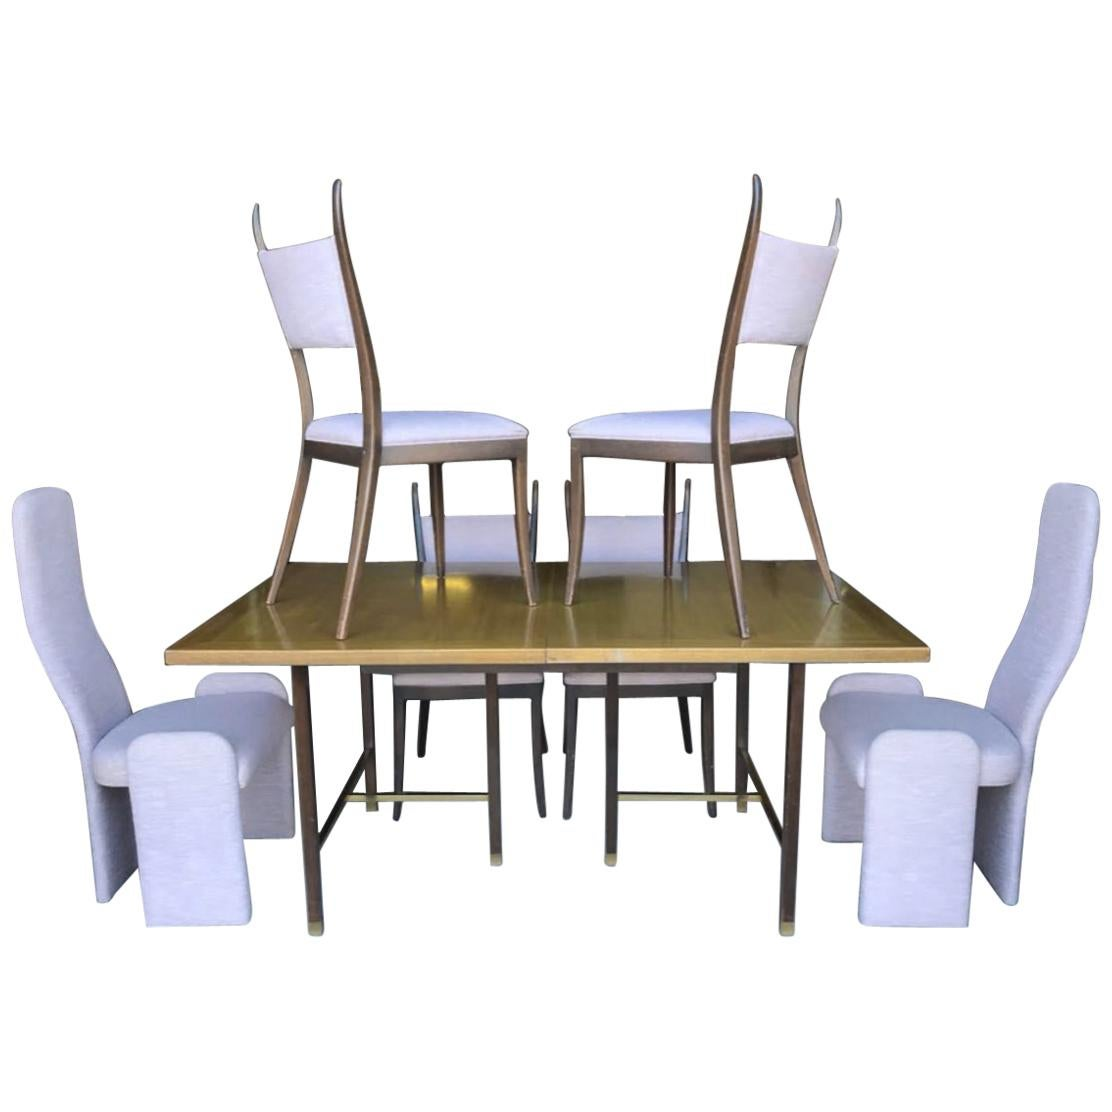 Harvey Probber Dining Table and 6 non-Probber Chairs